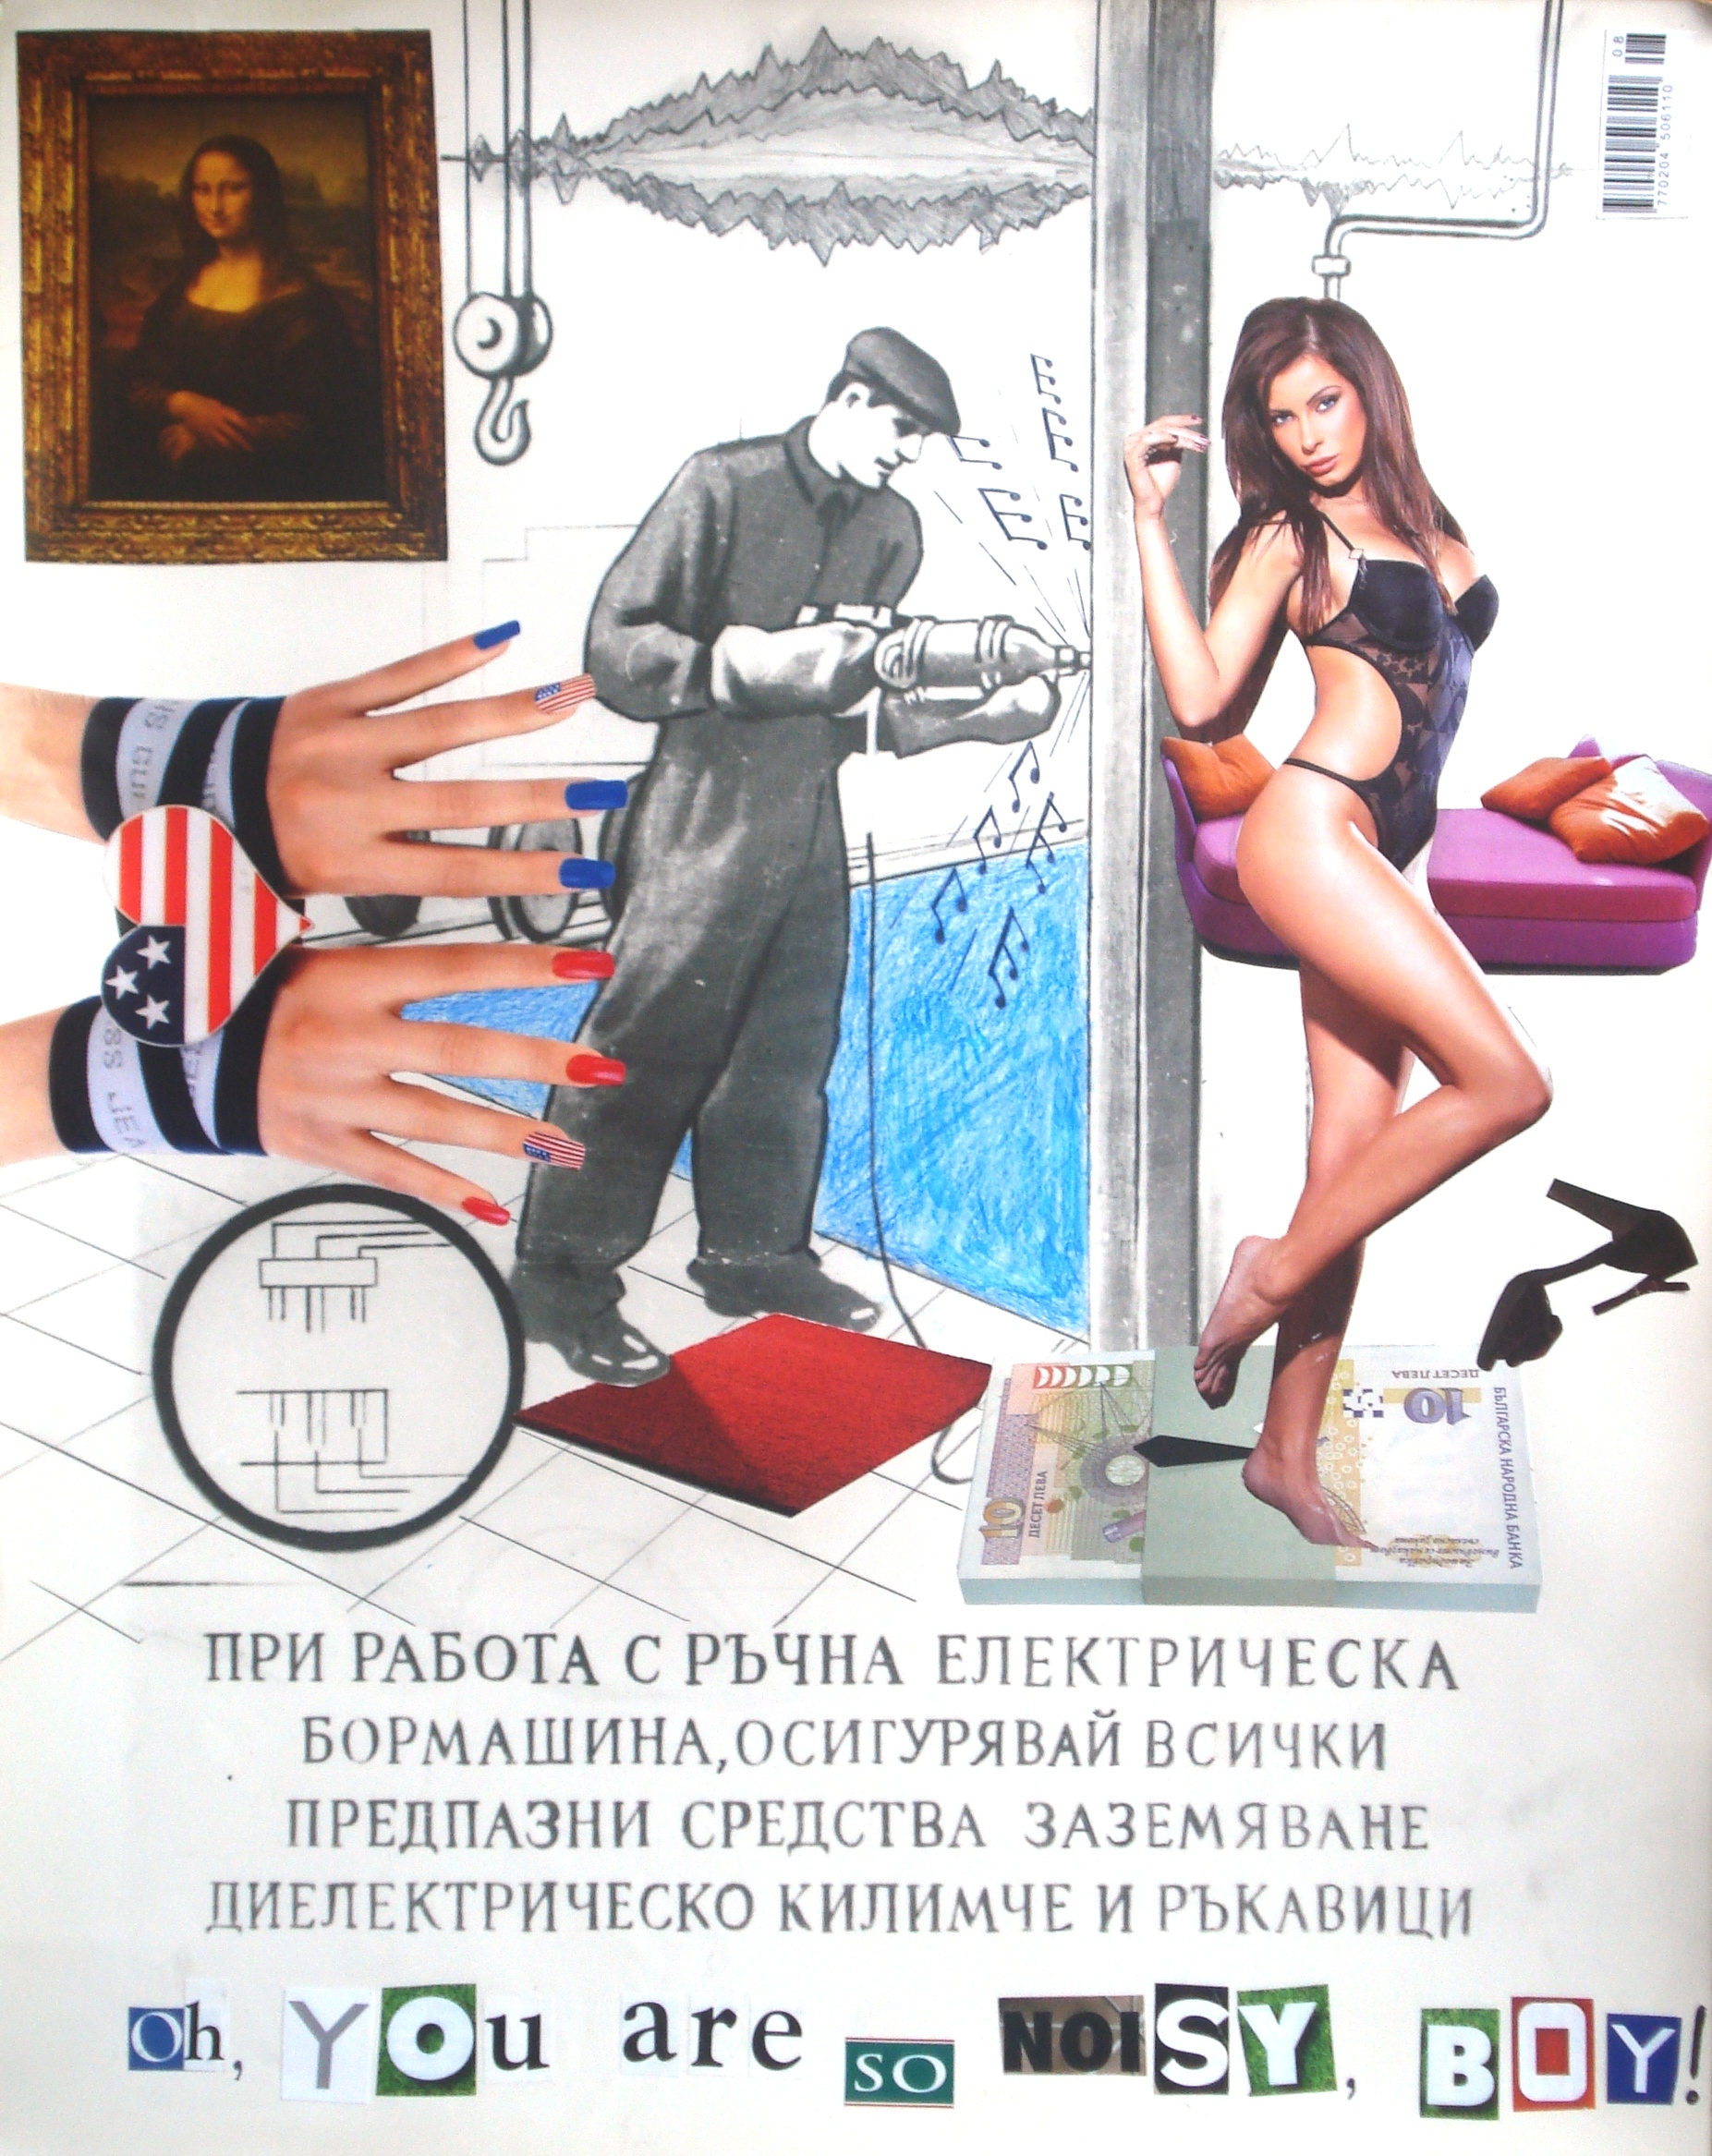 Poster 2